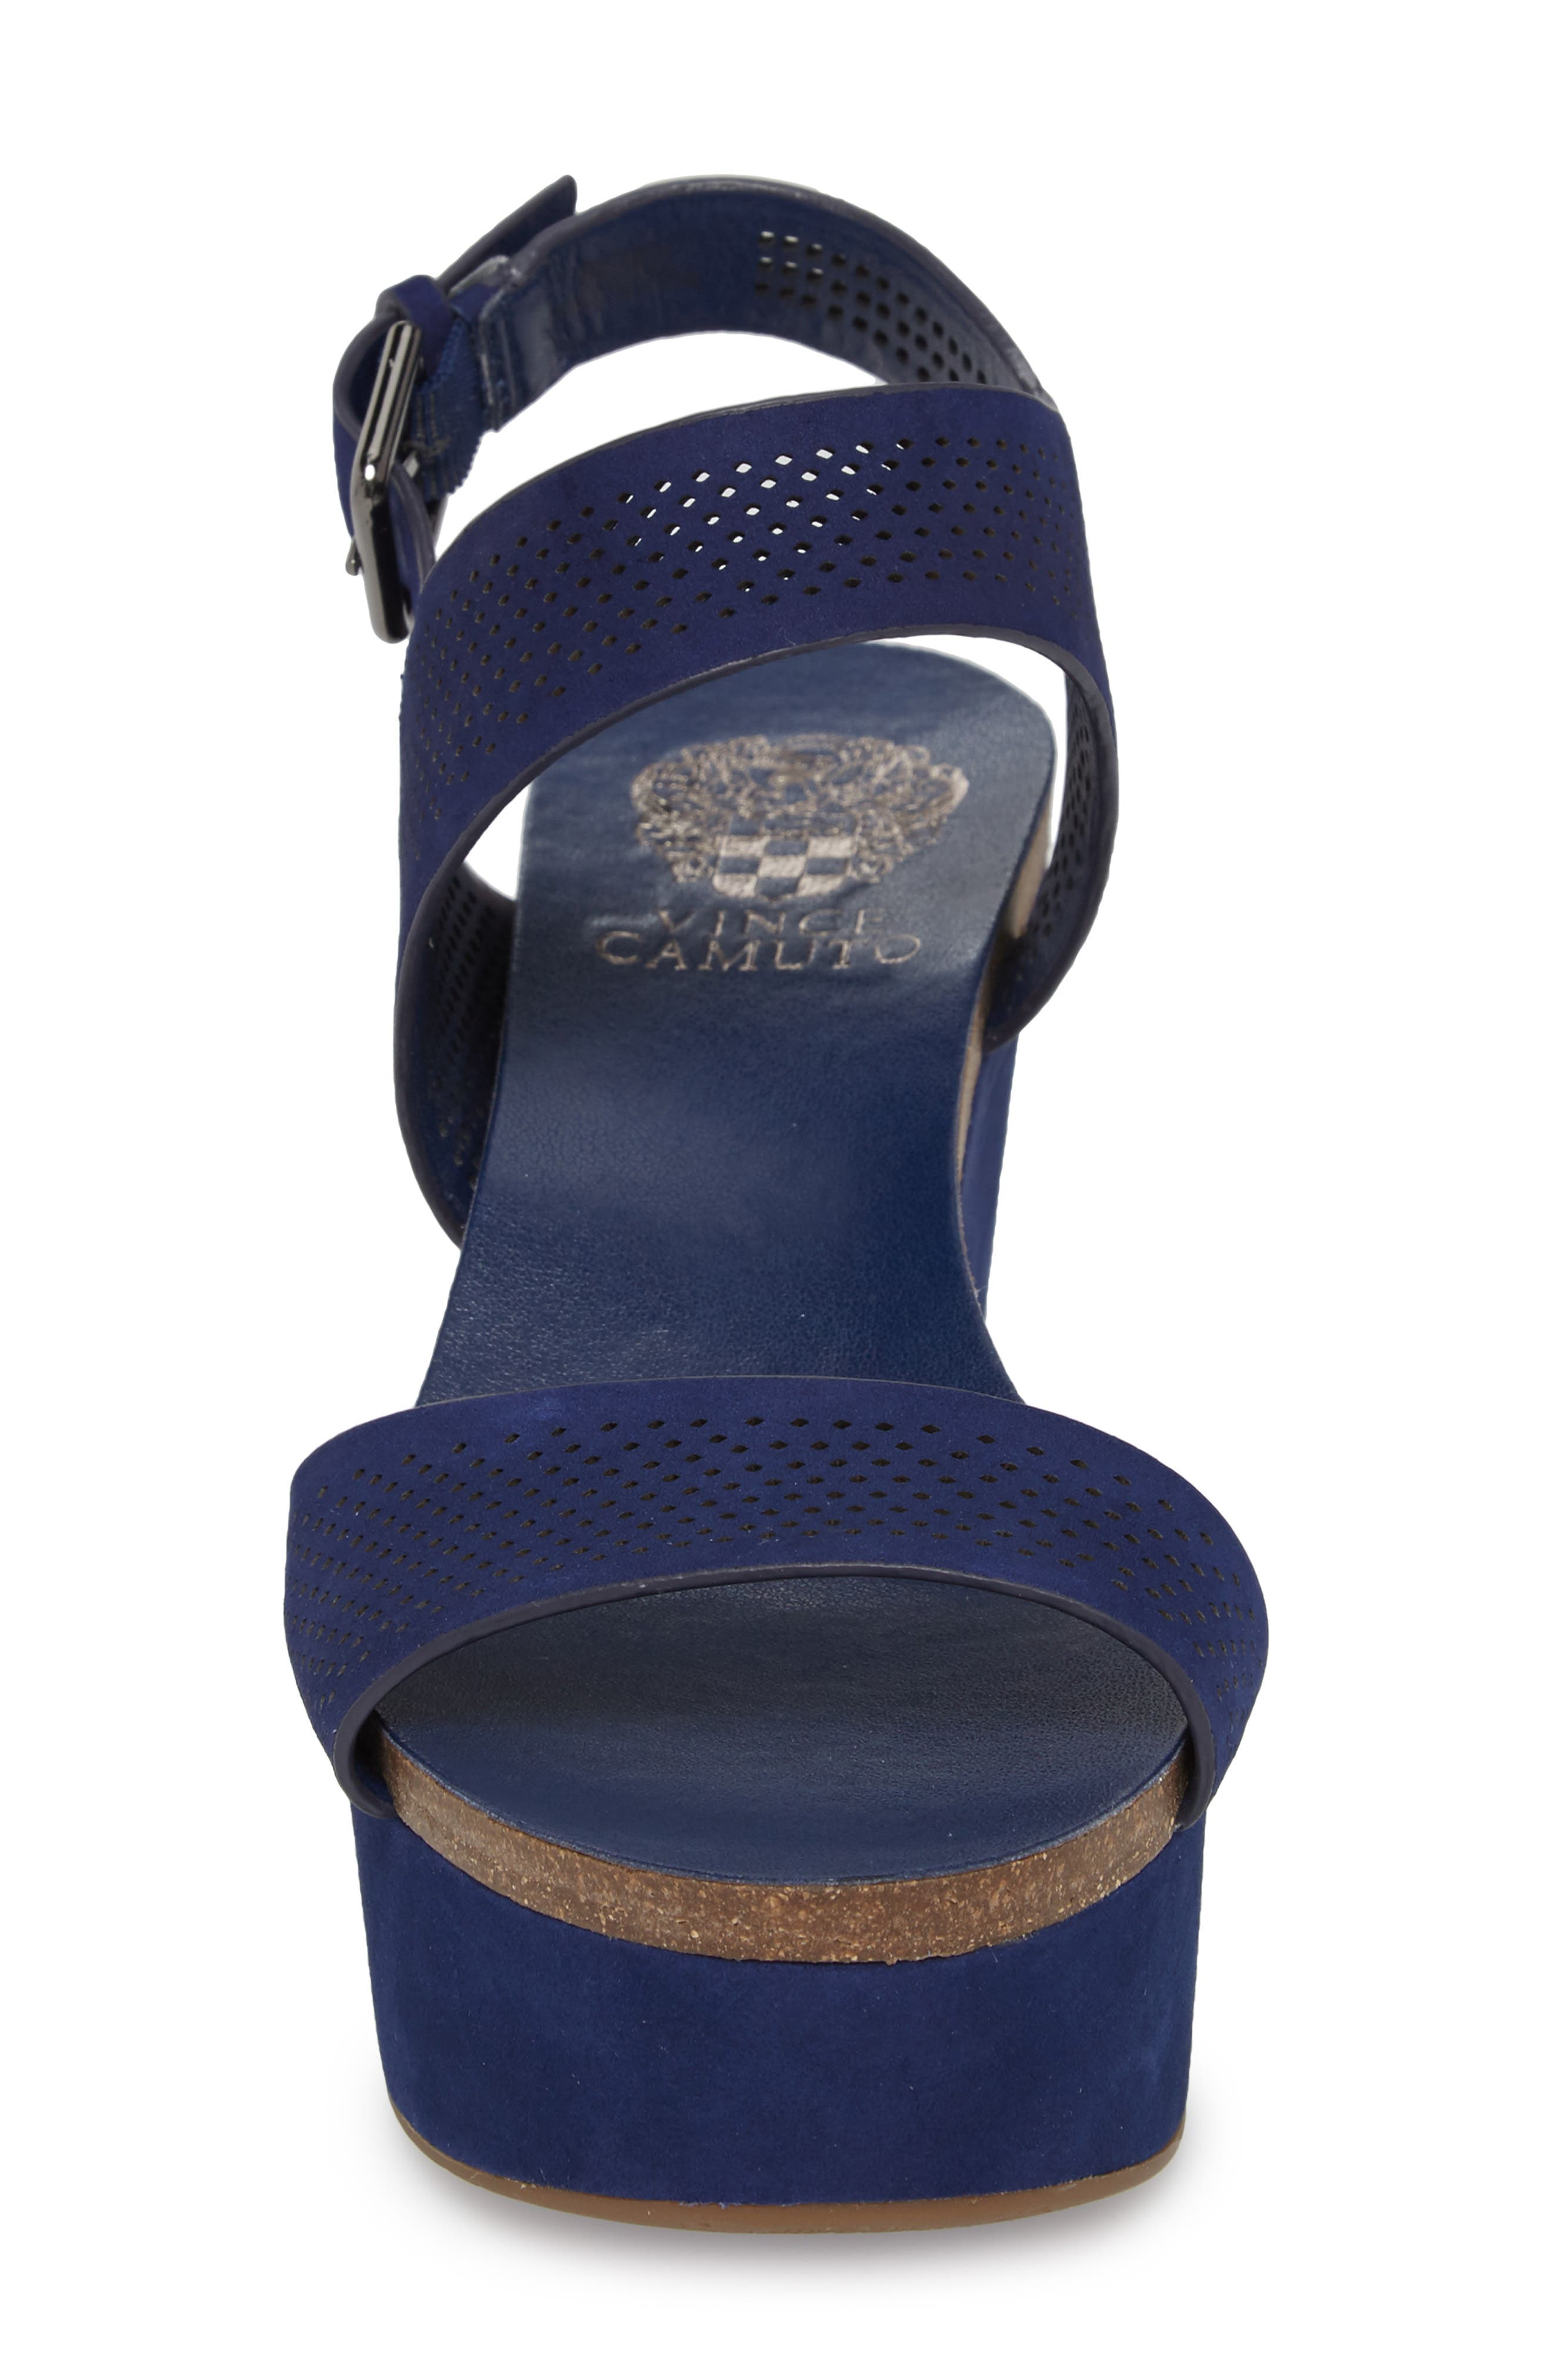 Vessinta Platform Wedge,                             Alternate thumbnail 4, color,                             Moody Blue Leather